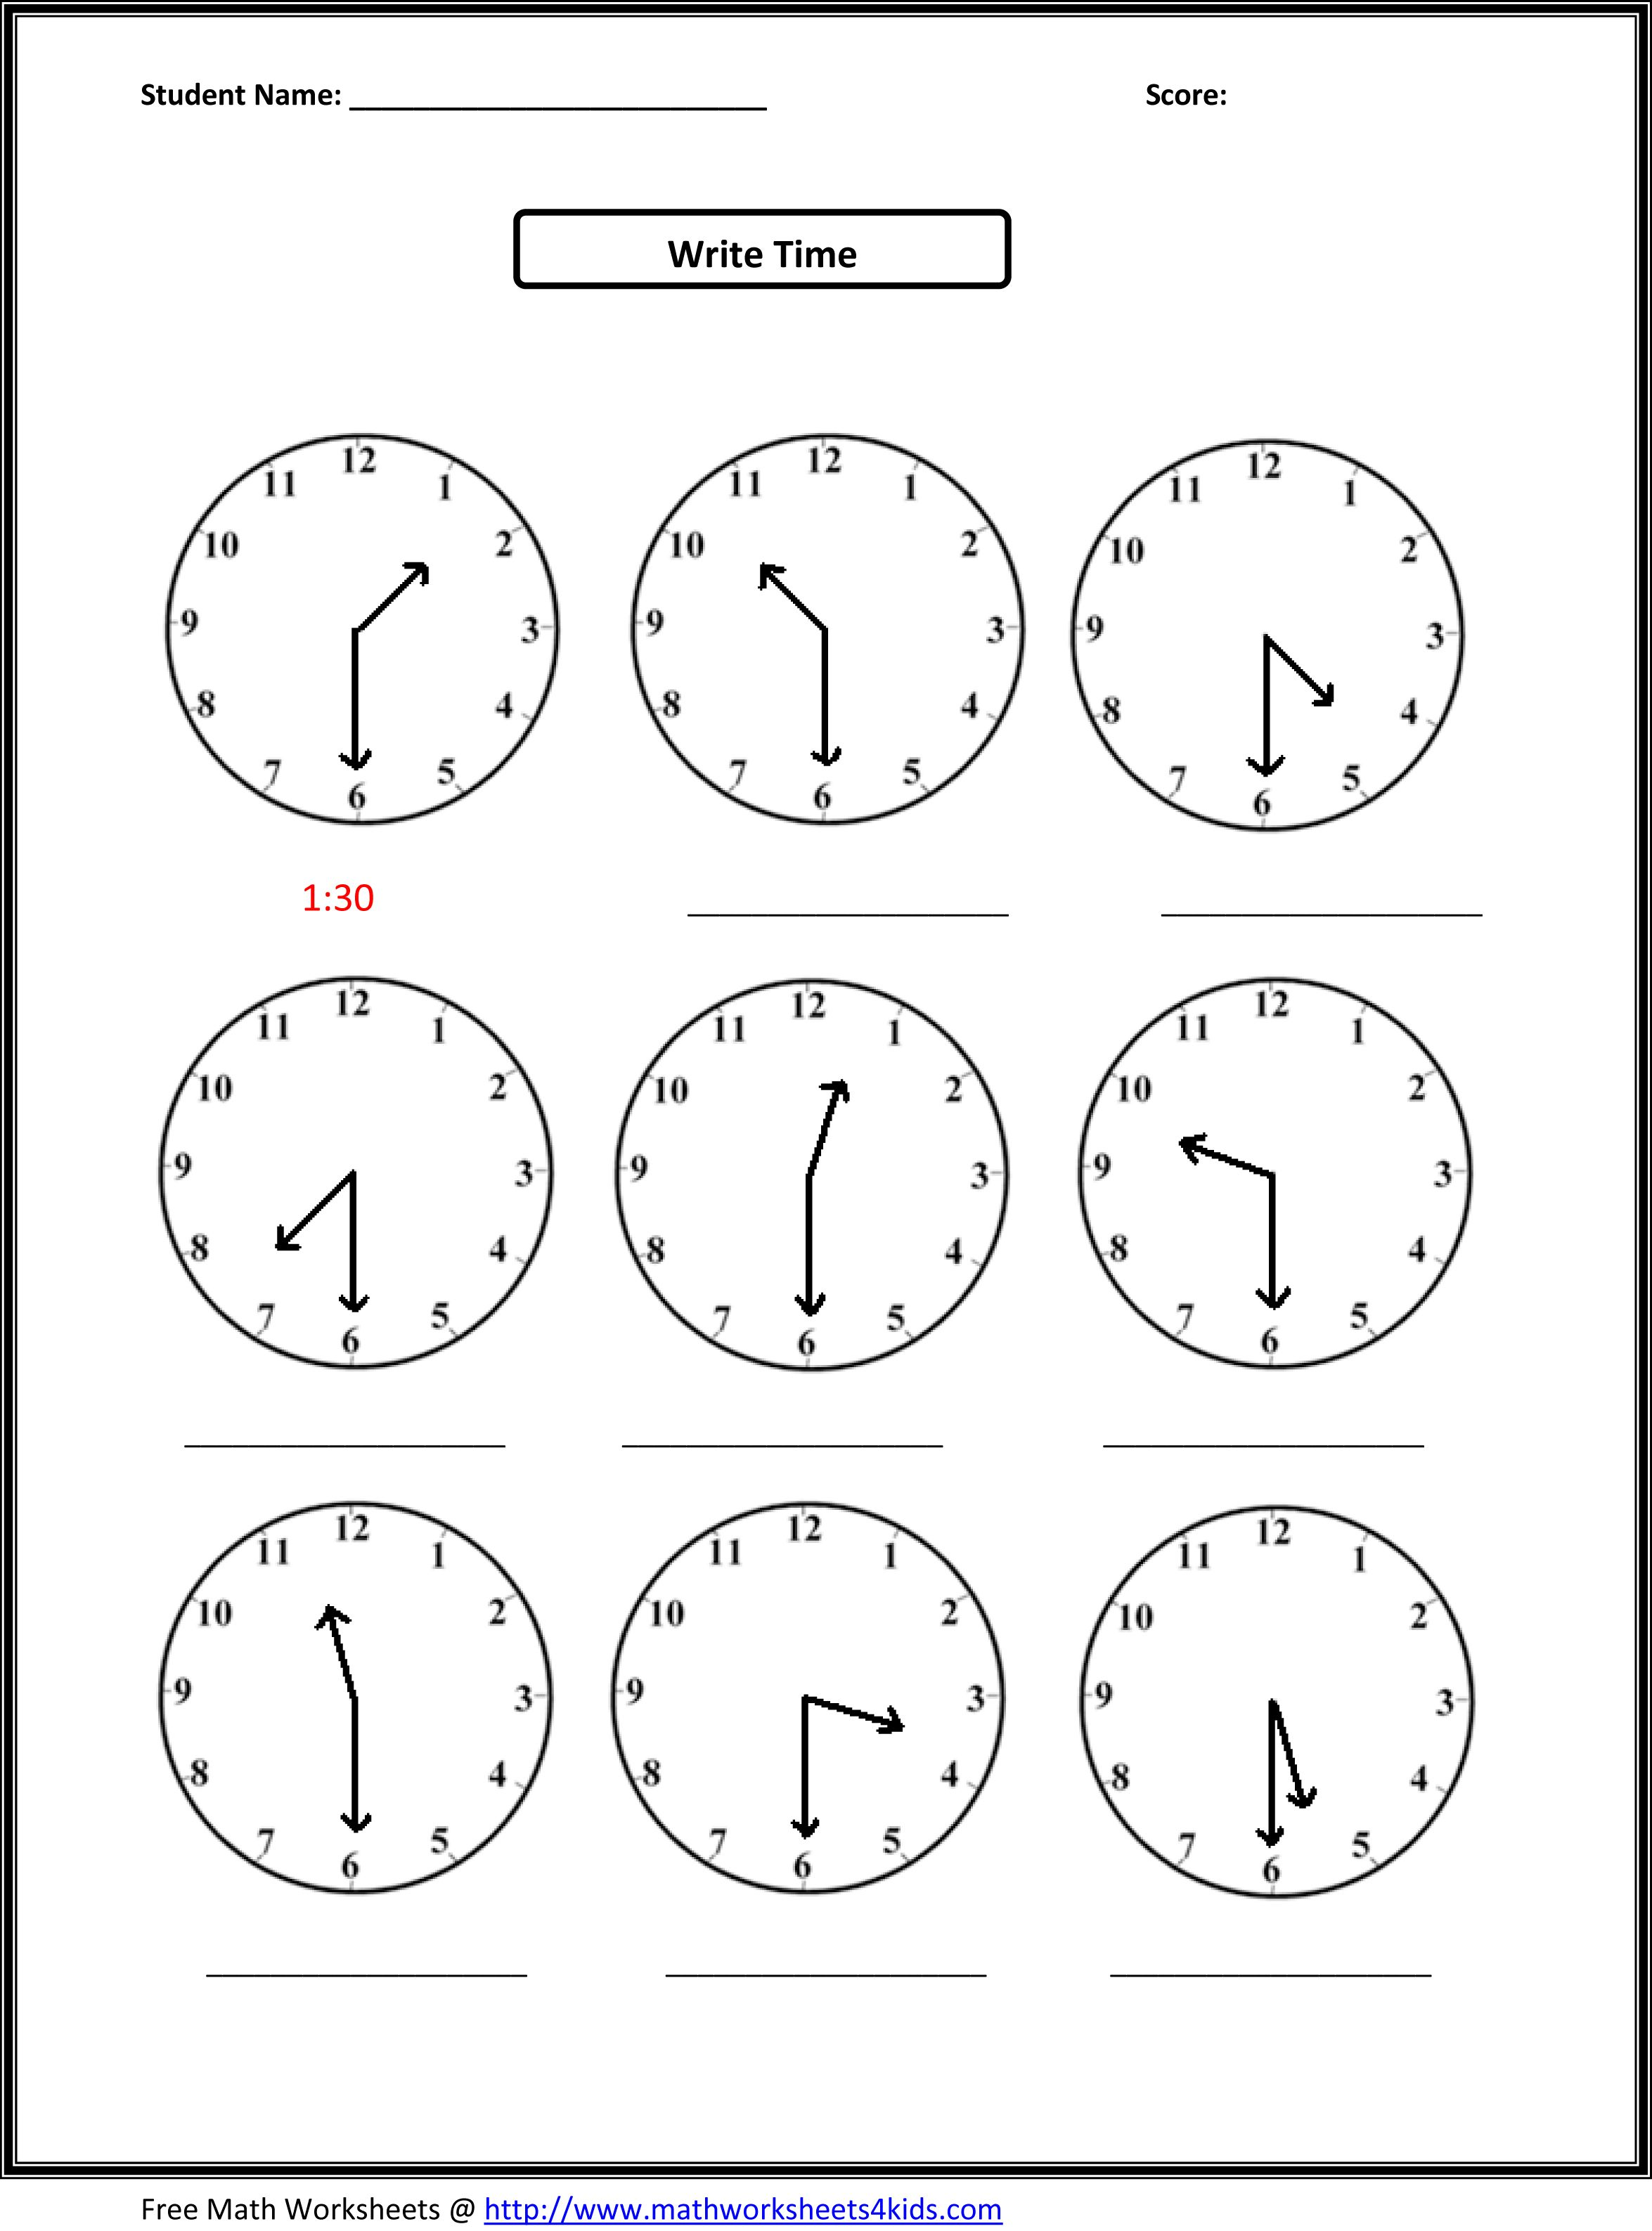 Proatmealus  Inspiring Worksheet On Time For Grade   Reocurent With Lovely Free Printable Telling Time Worksheets Nd Grade  Reocurent With Awesome Free Graphing Worksheets Also Pre Primer Sight Word Worksheets In Addition Punnett Square Worksheet Human Characteristics Answers And World War  Worksheet As Well As Correcting Run On Sentences Worksheet Additionally Free Cbt Worksheets From Reocurentcom With Proatmealus  Lovely Worksheet On Time For Grade   Reocurent With Awesome Free Printable Telling Time Worksheets Nd Grade  Reocurent And Inspiring Free Graphing Worksheets Also Pre Primer Sight Word Worksheets In Addition Punnett Square Worksheet Human Characteristics Answers From Reocurentcom